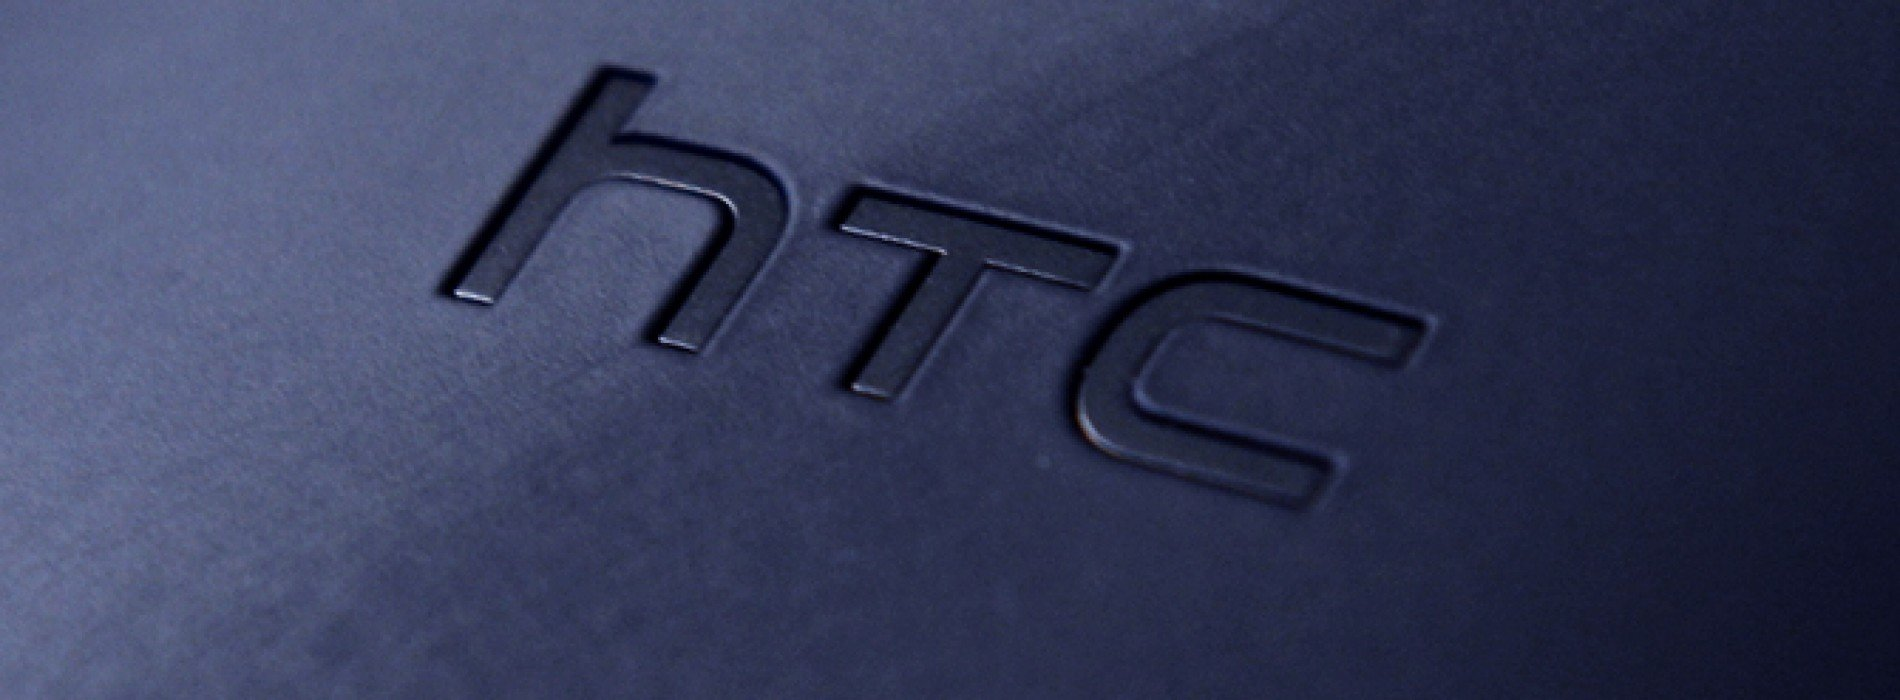 "HTC M7 set to have ""simple and clean"" UI, all-black design"